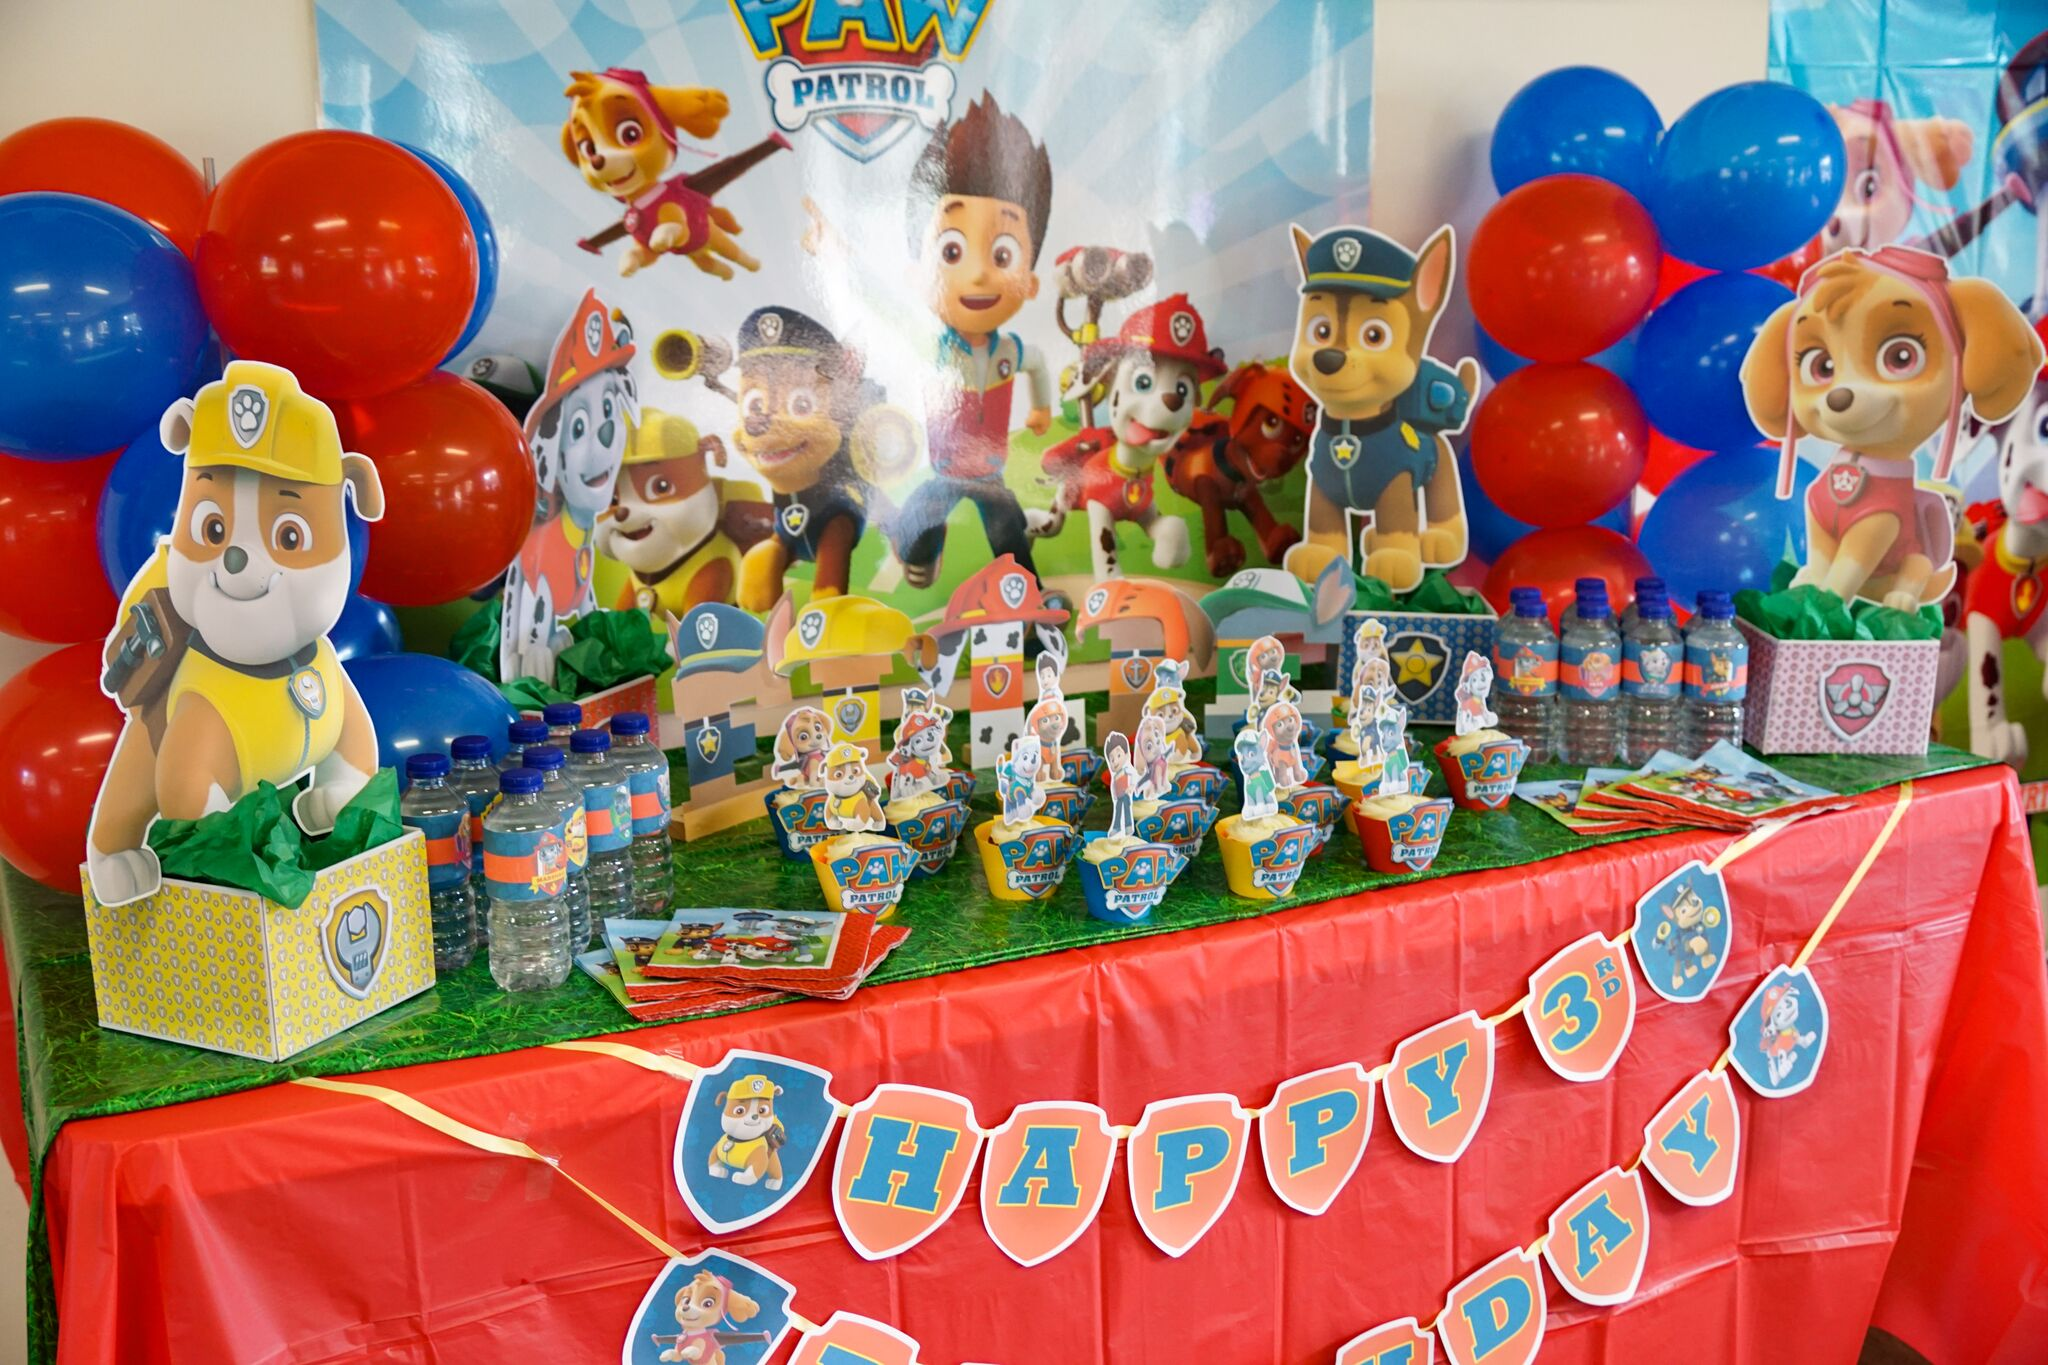 Happy Birthday banner Paw Patrol theme